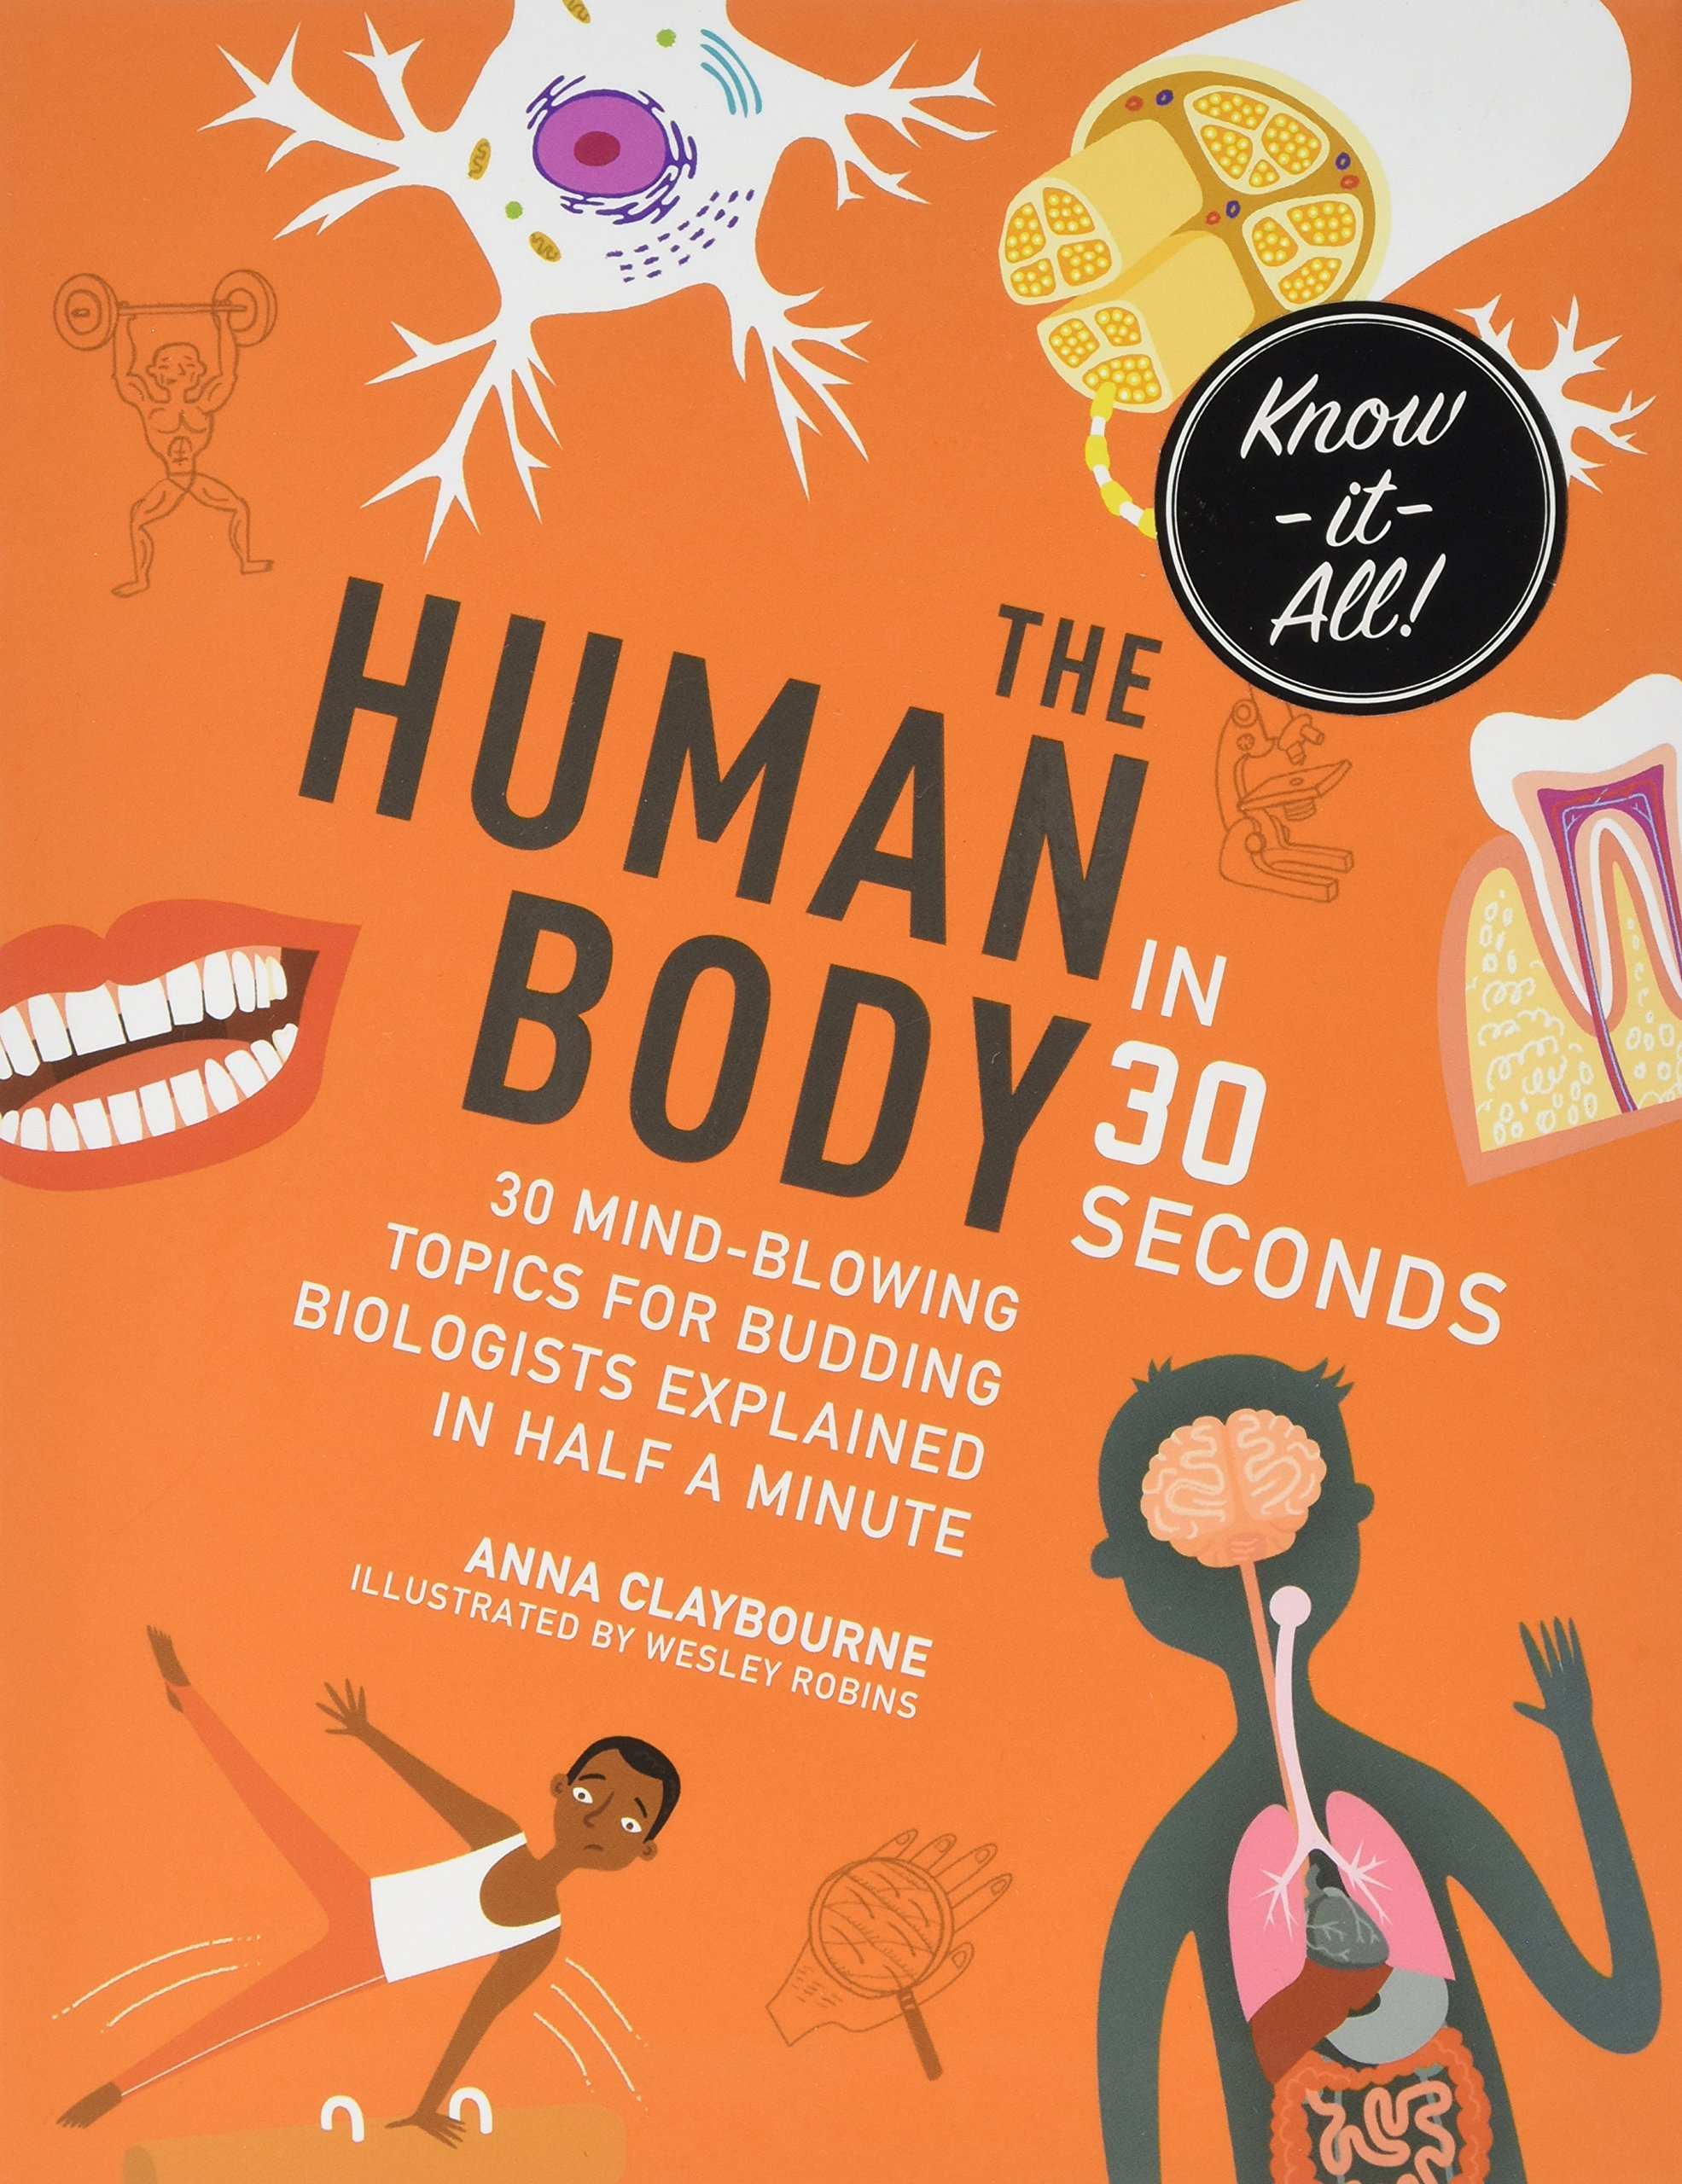 The Human Body in 30 Seconds: 30 mind-blowing topics for budding biologists explained in half a minute (Kids 30 Second)